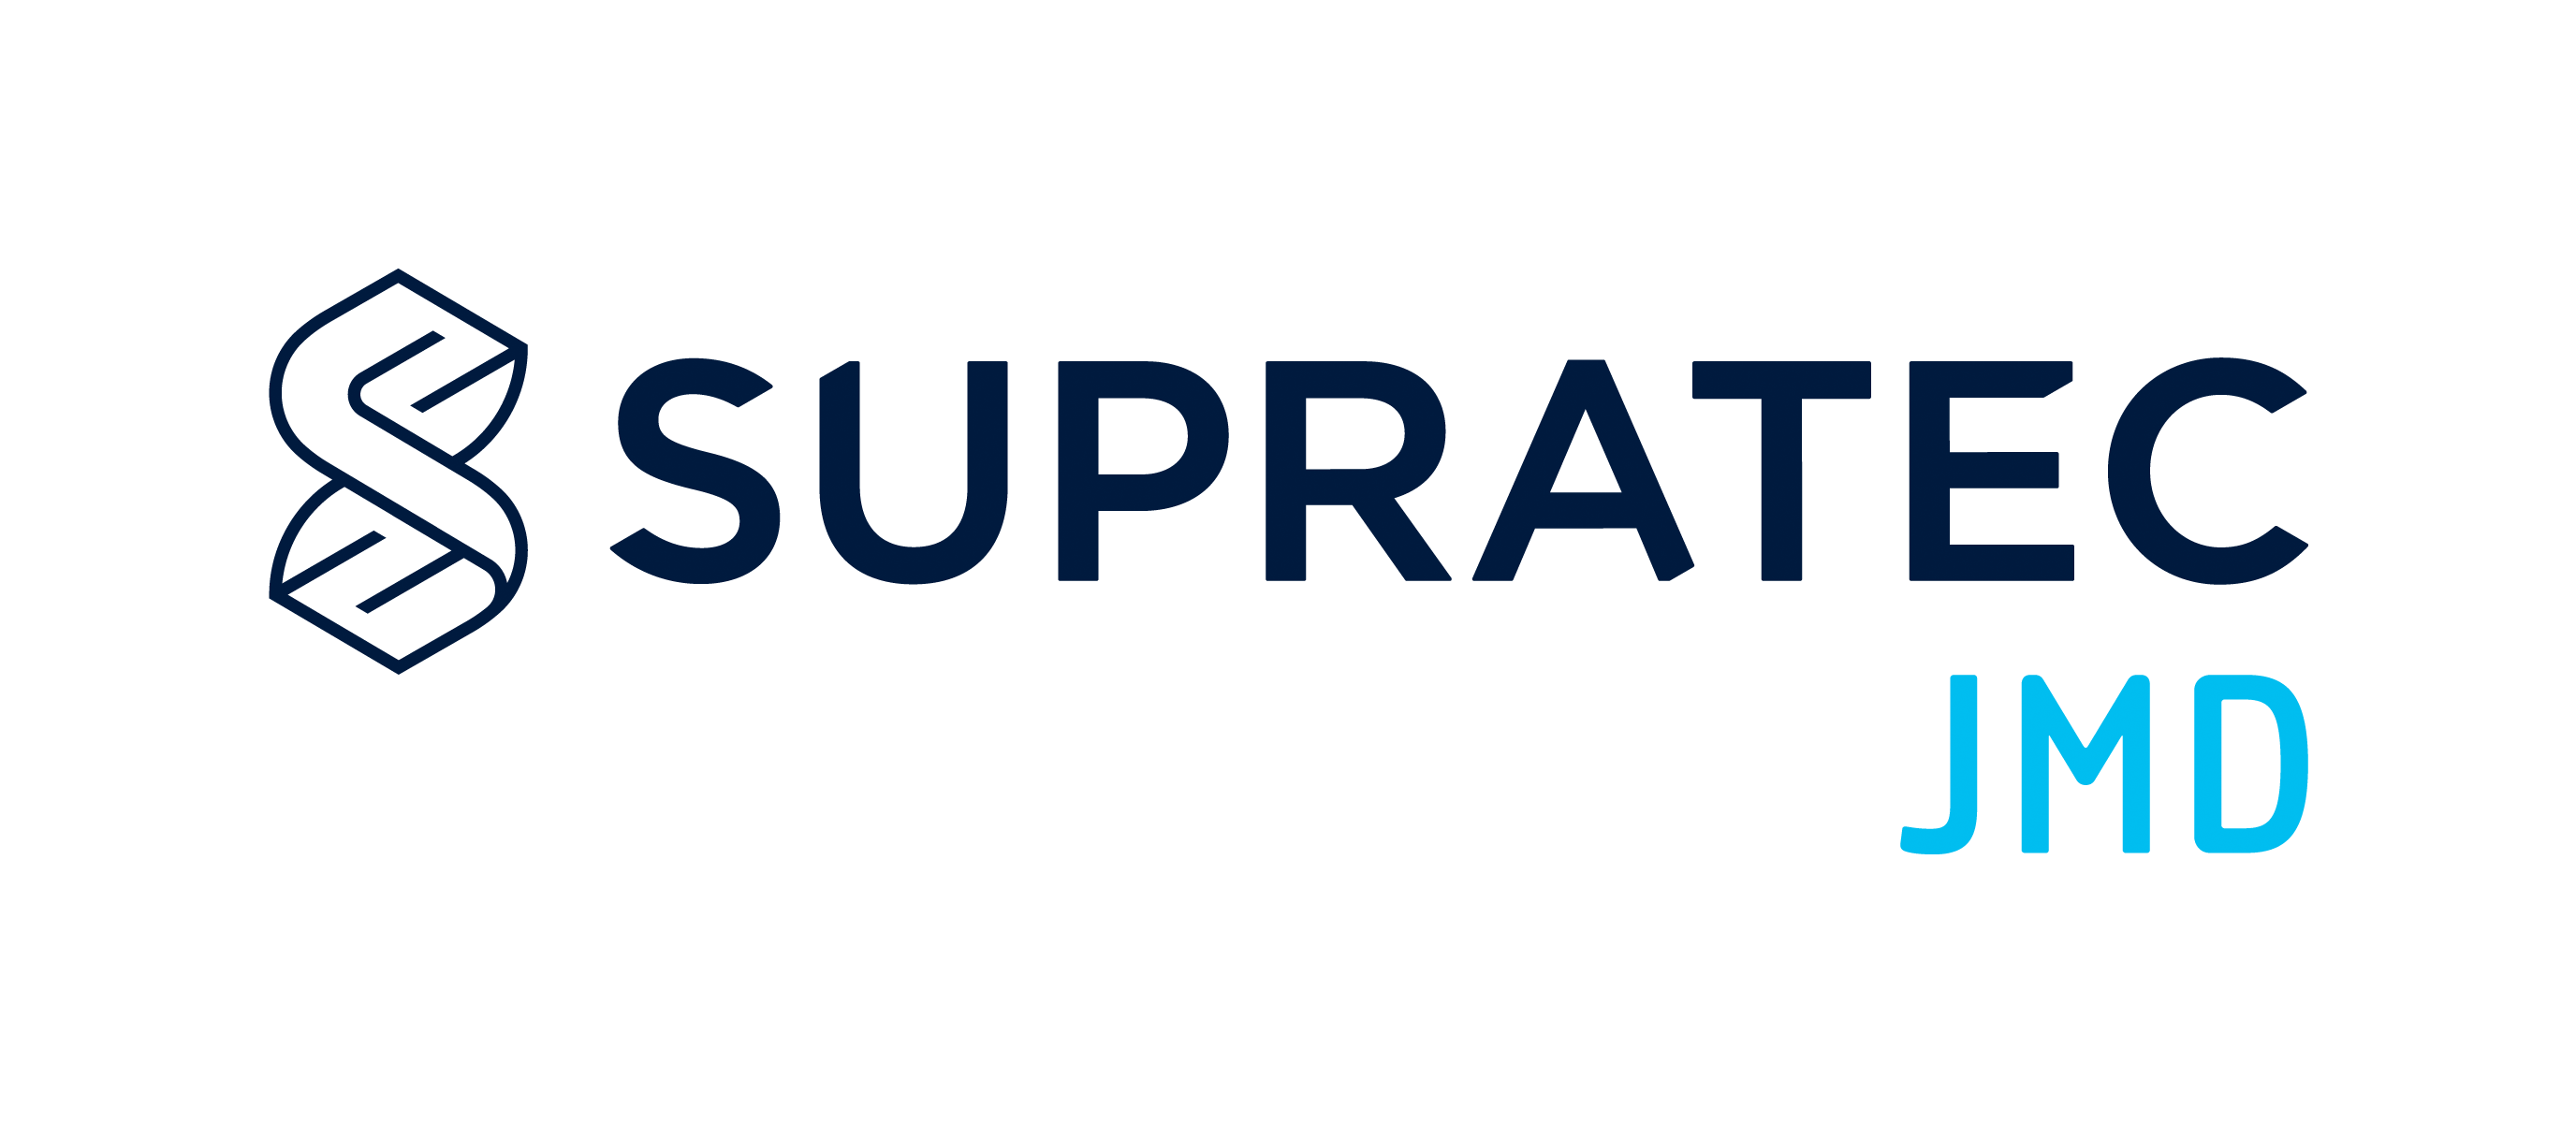 Logo the brand SUPRATEC JMD